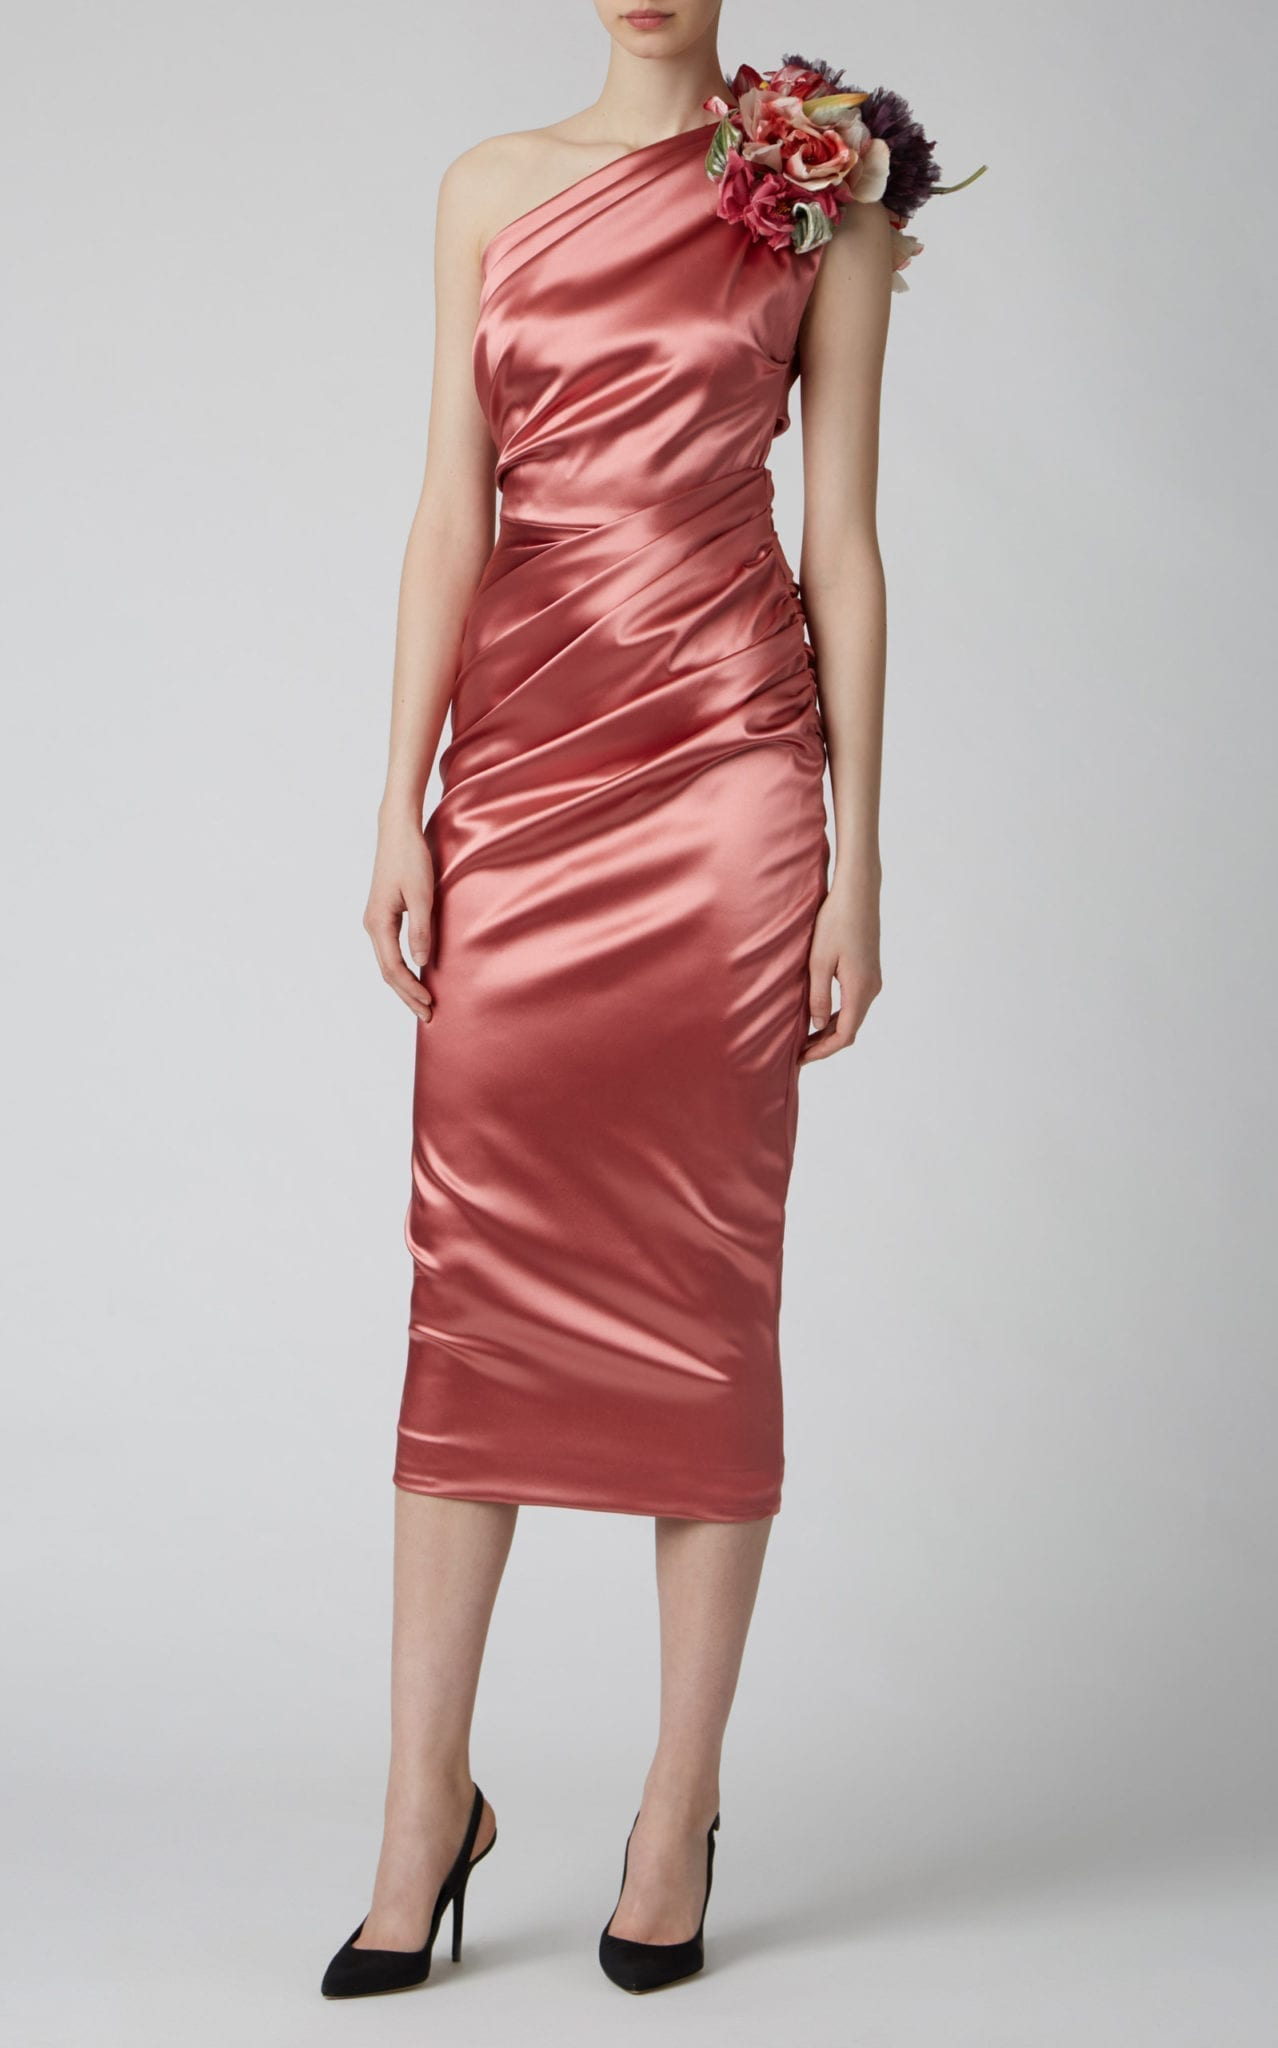 DOLCE & GABBANA Embellished One-Shoulder Ruched Satin Dress